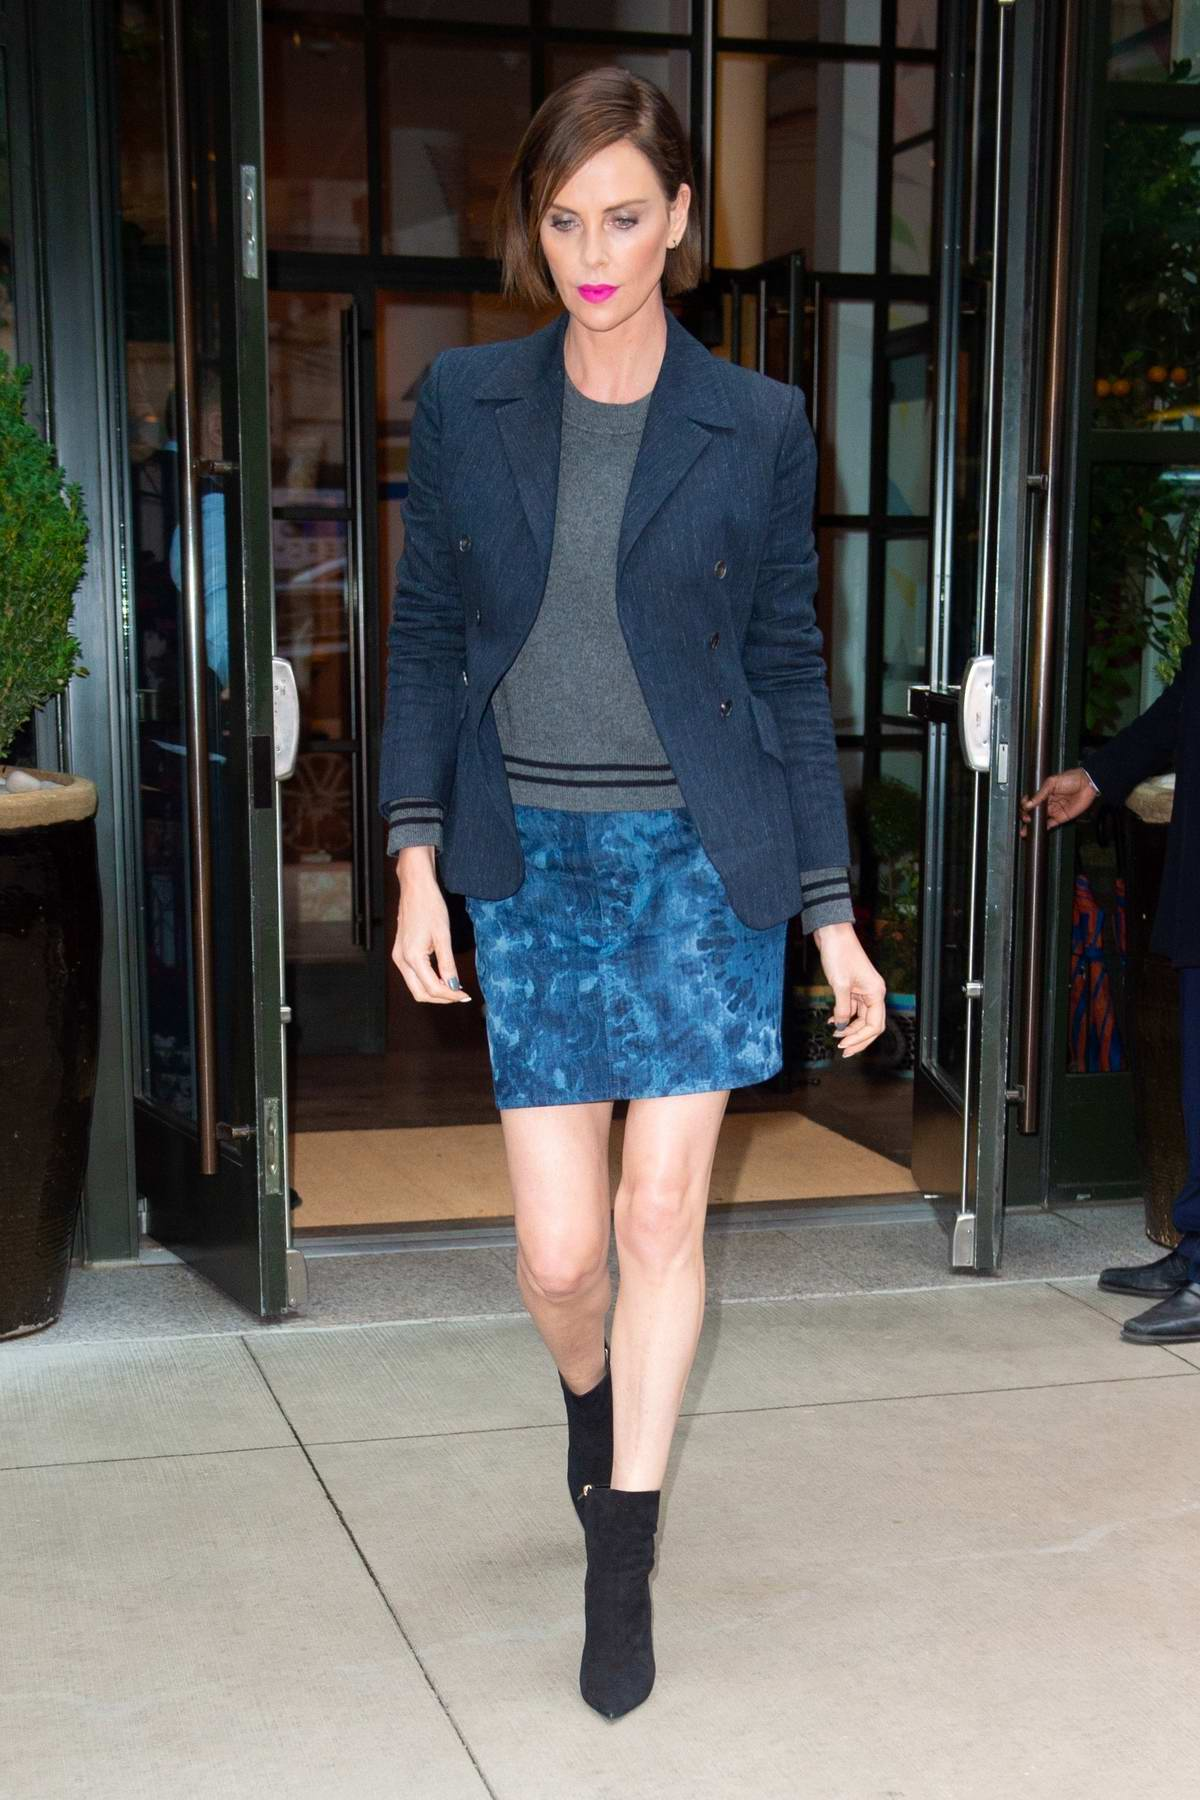 Charlize Theron sports a denim blazer teamed with a denim miniskirt as she heads to 'Late Night with Seth Meyers' in New York City